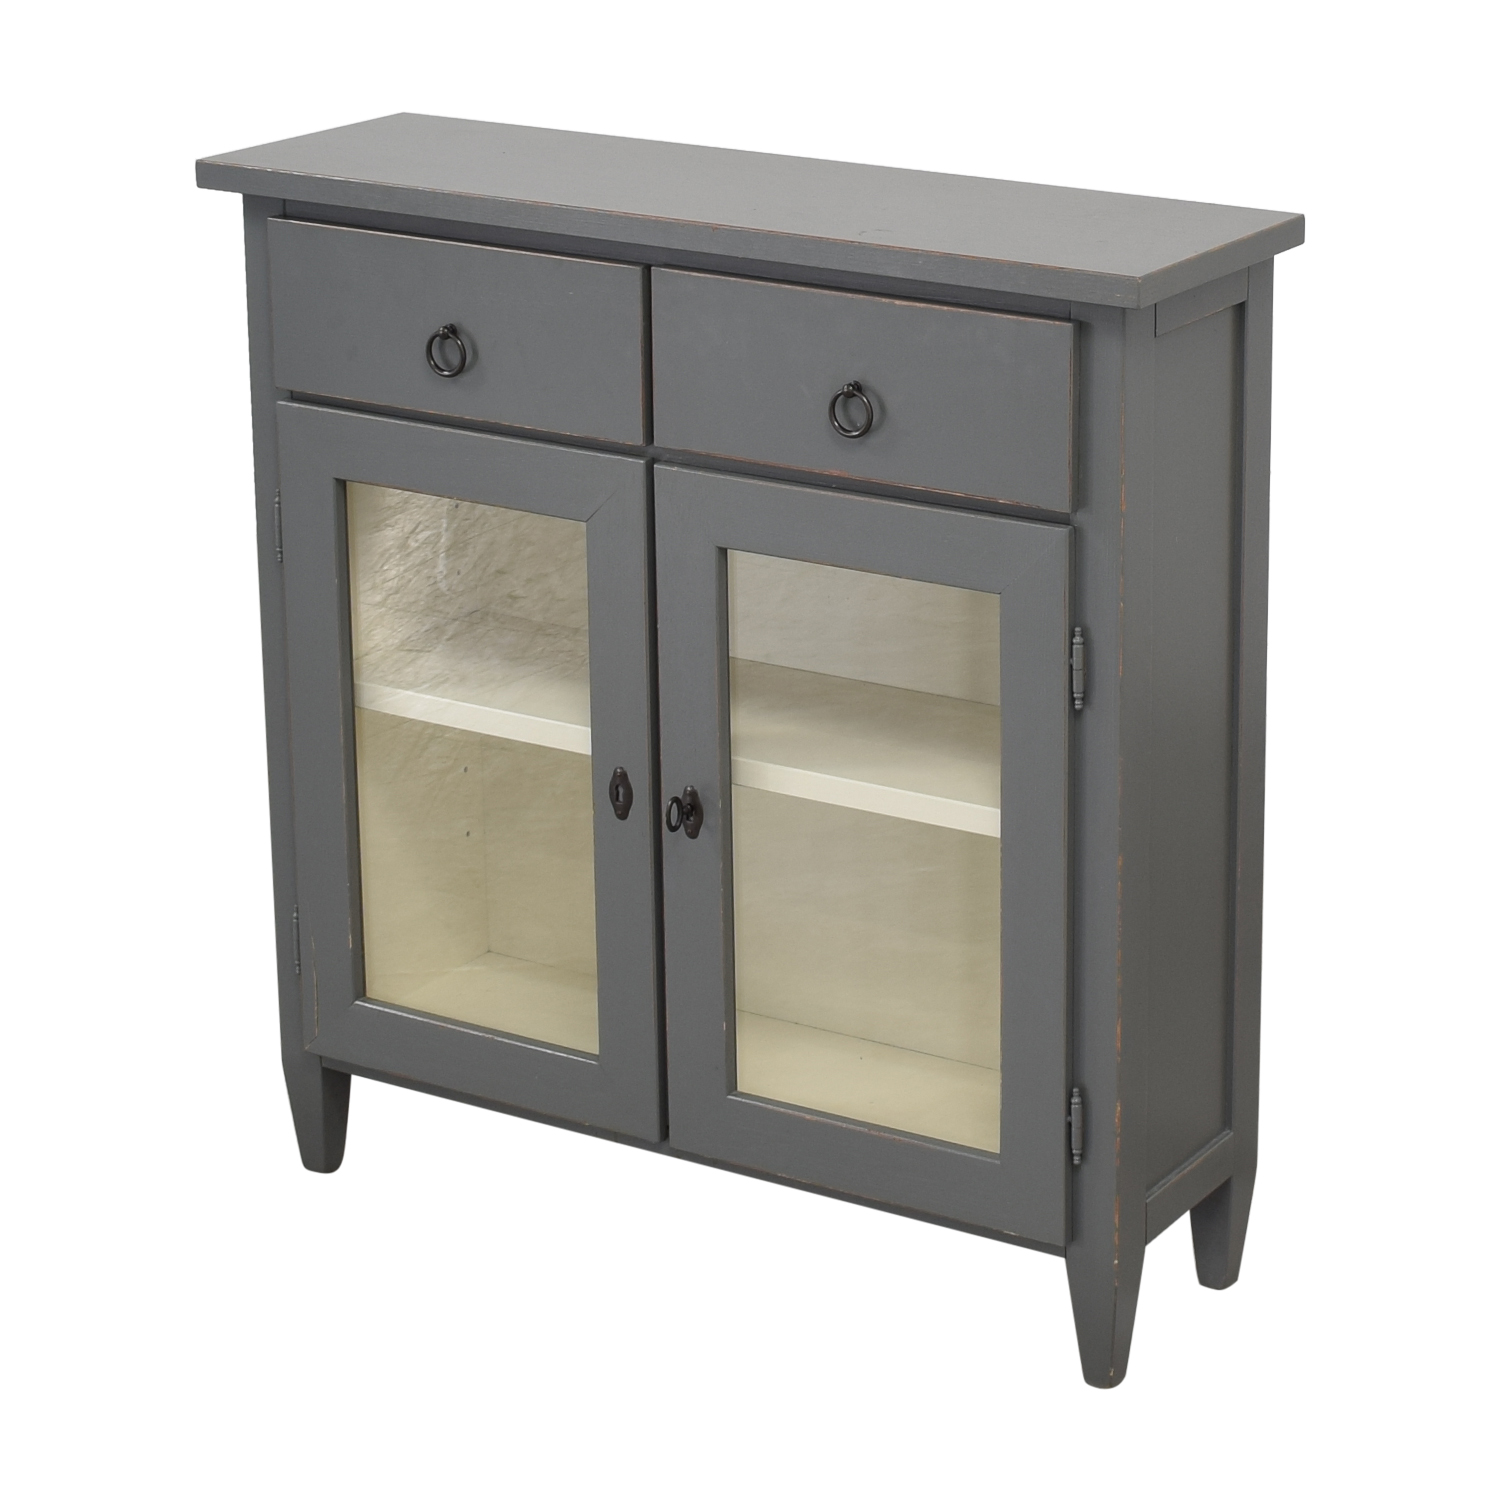 Crate & Barrel Crate & Barrel Stretto Grey Entryway Cabinet Cabinets & Sideboards